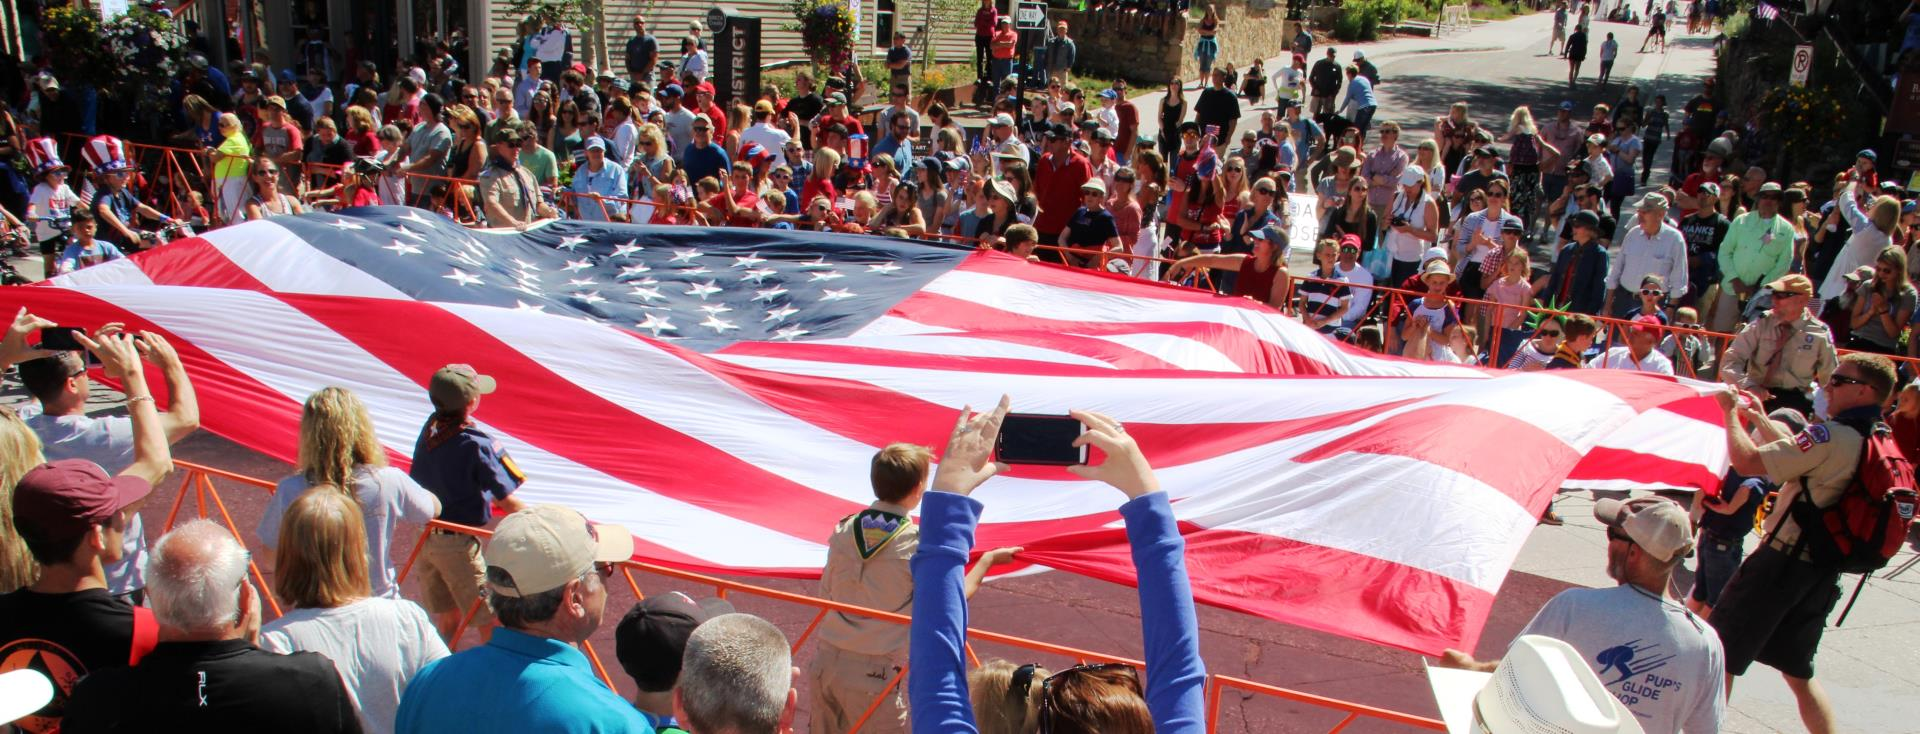 USA American flag carried by Boy Scouts in July 4th parade